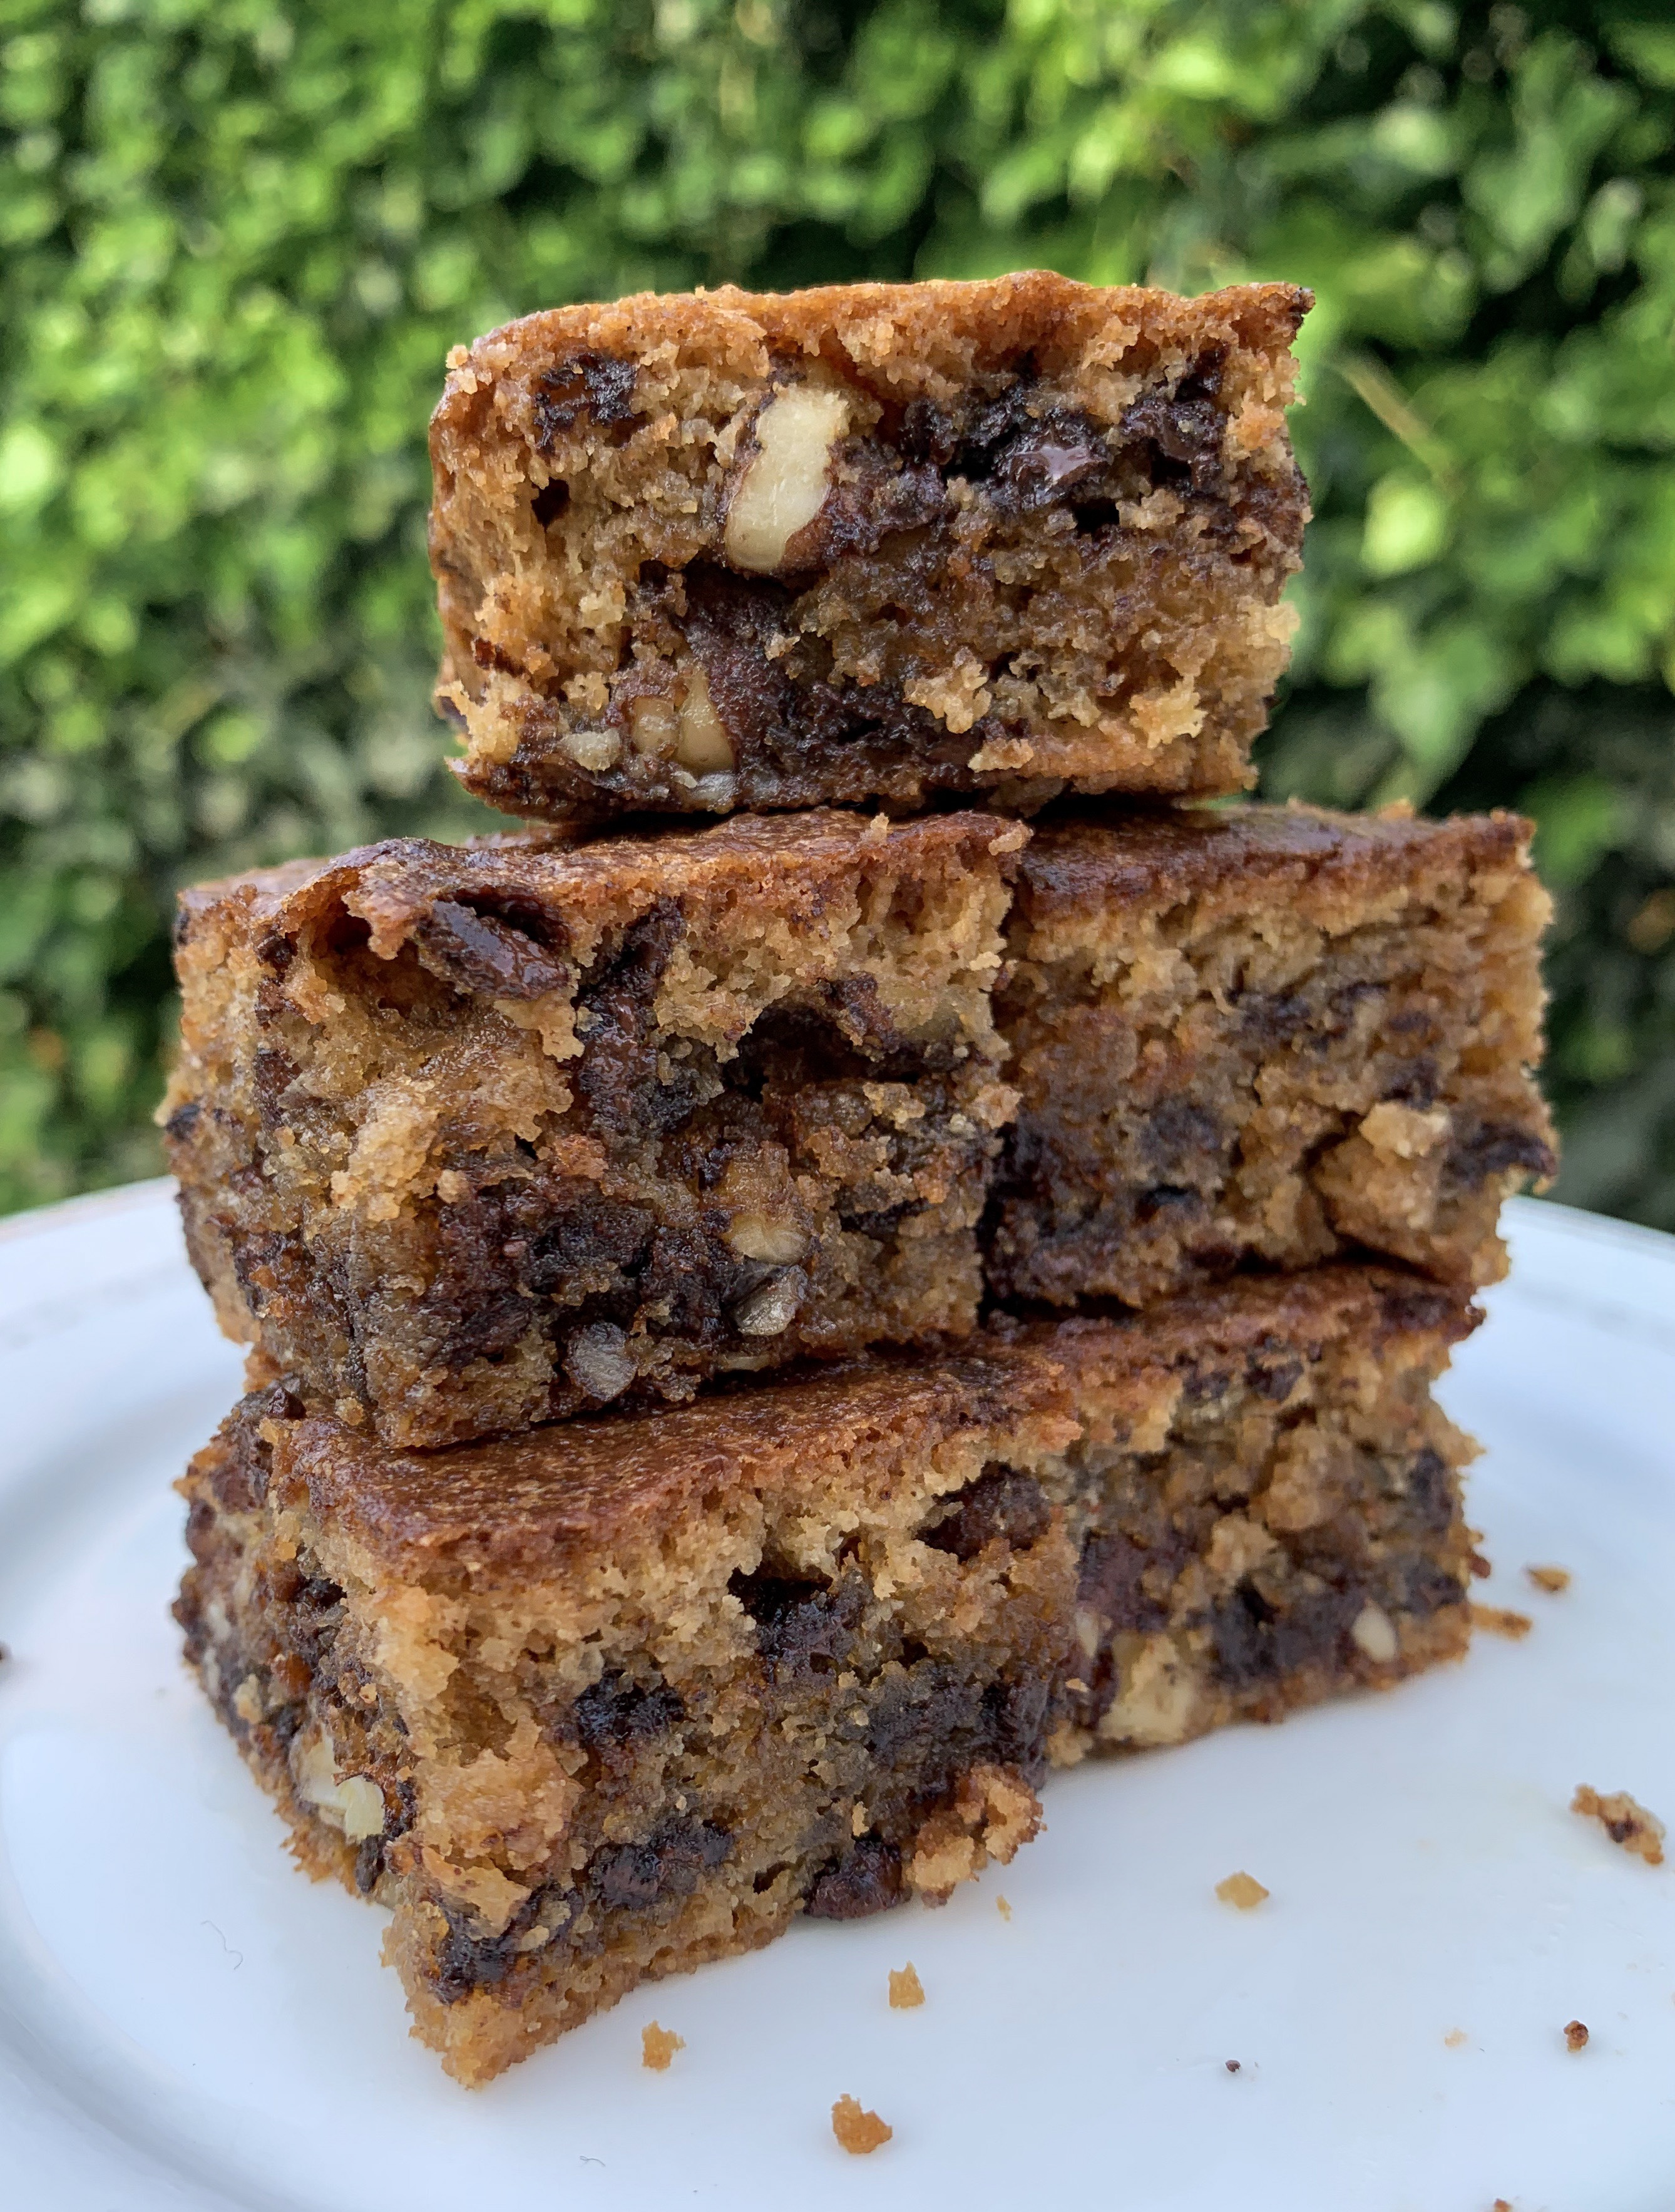 Picture of keto blondies cakes in the garden